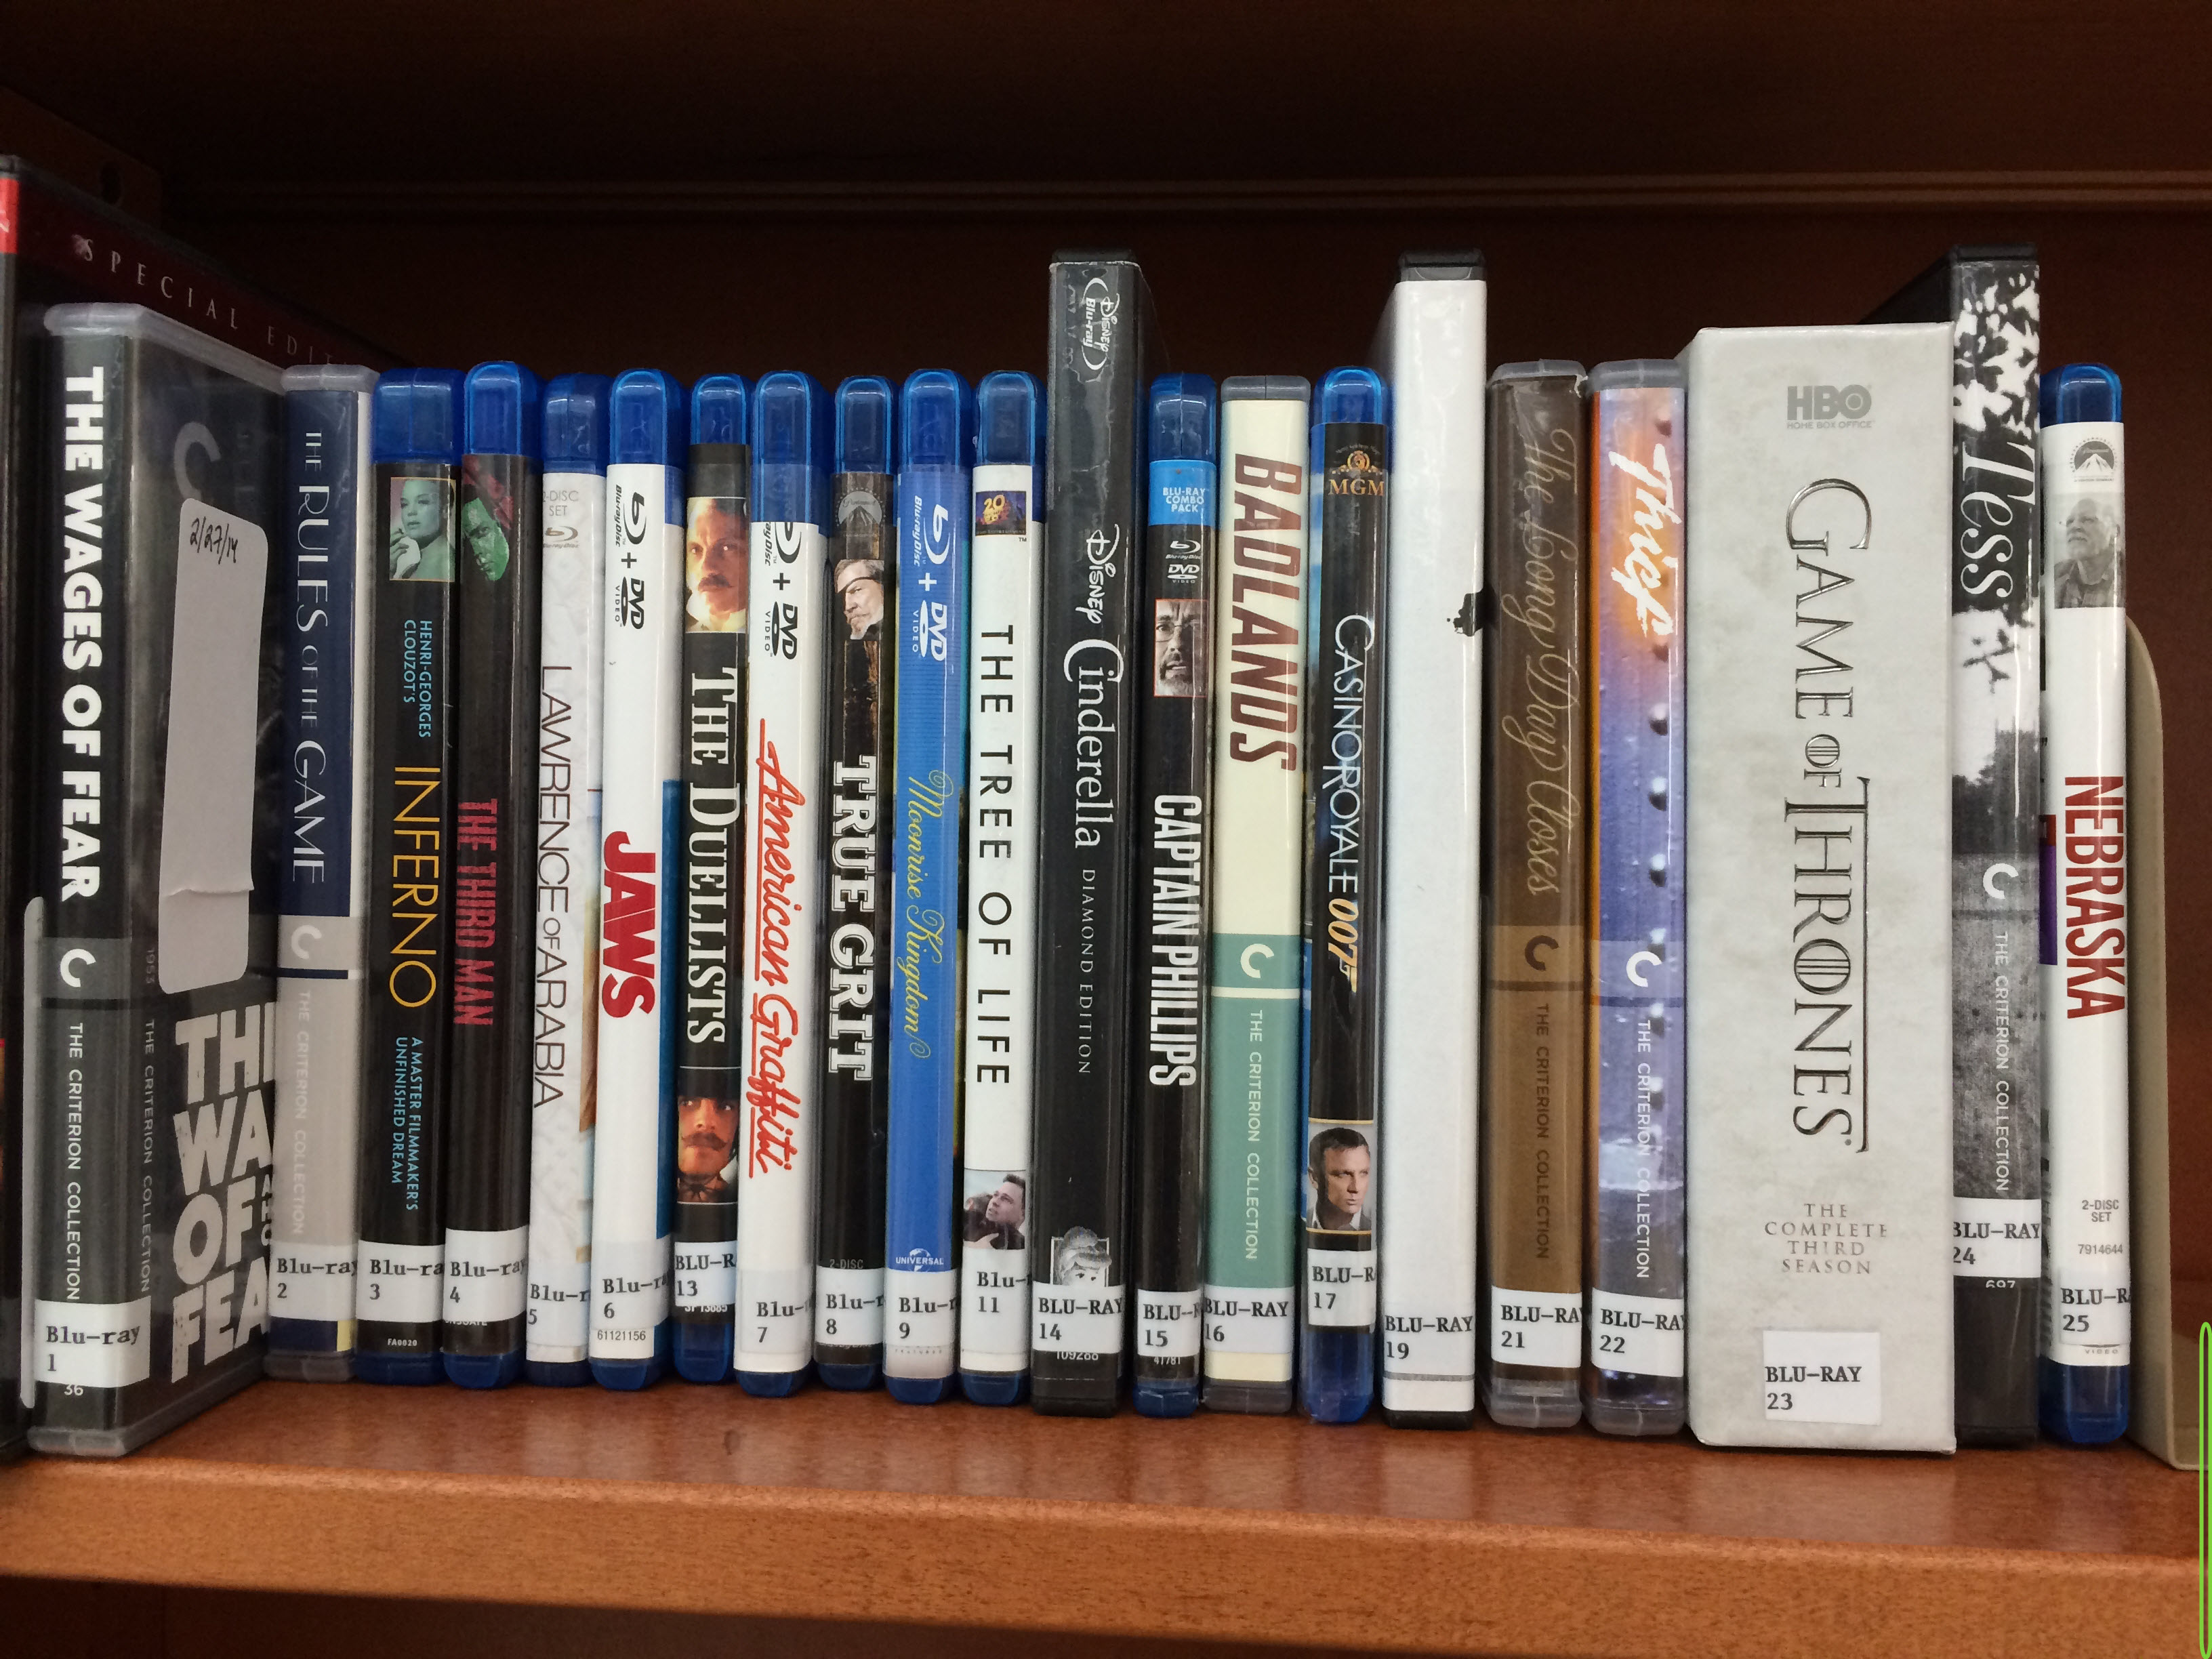 close-up of blu-ray cases on the shelf